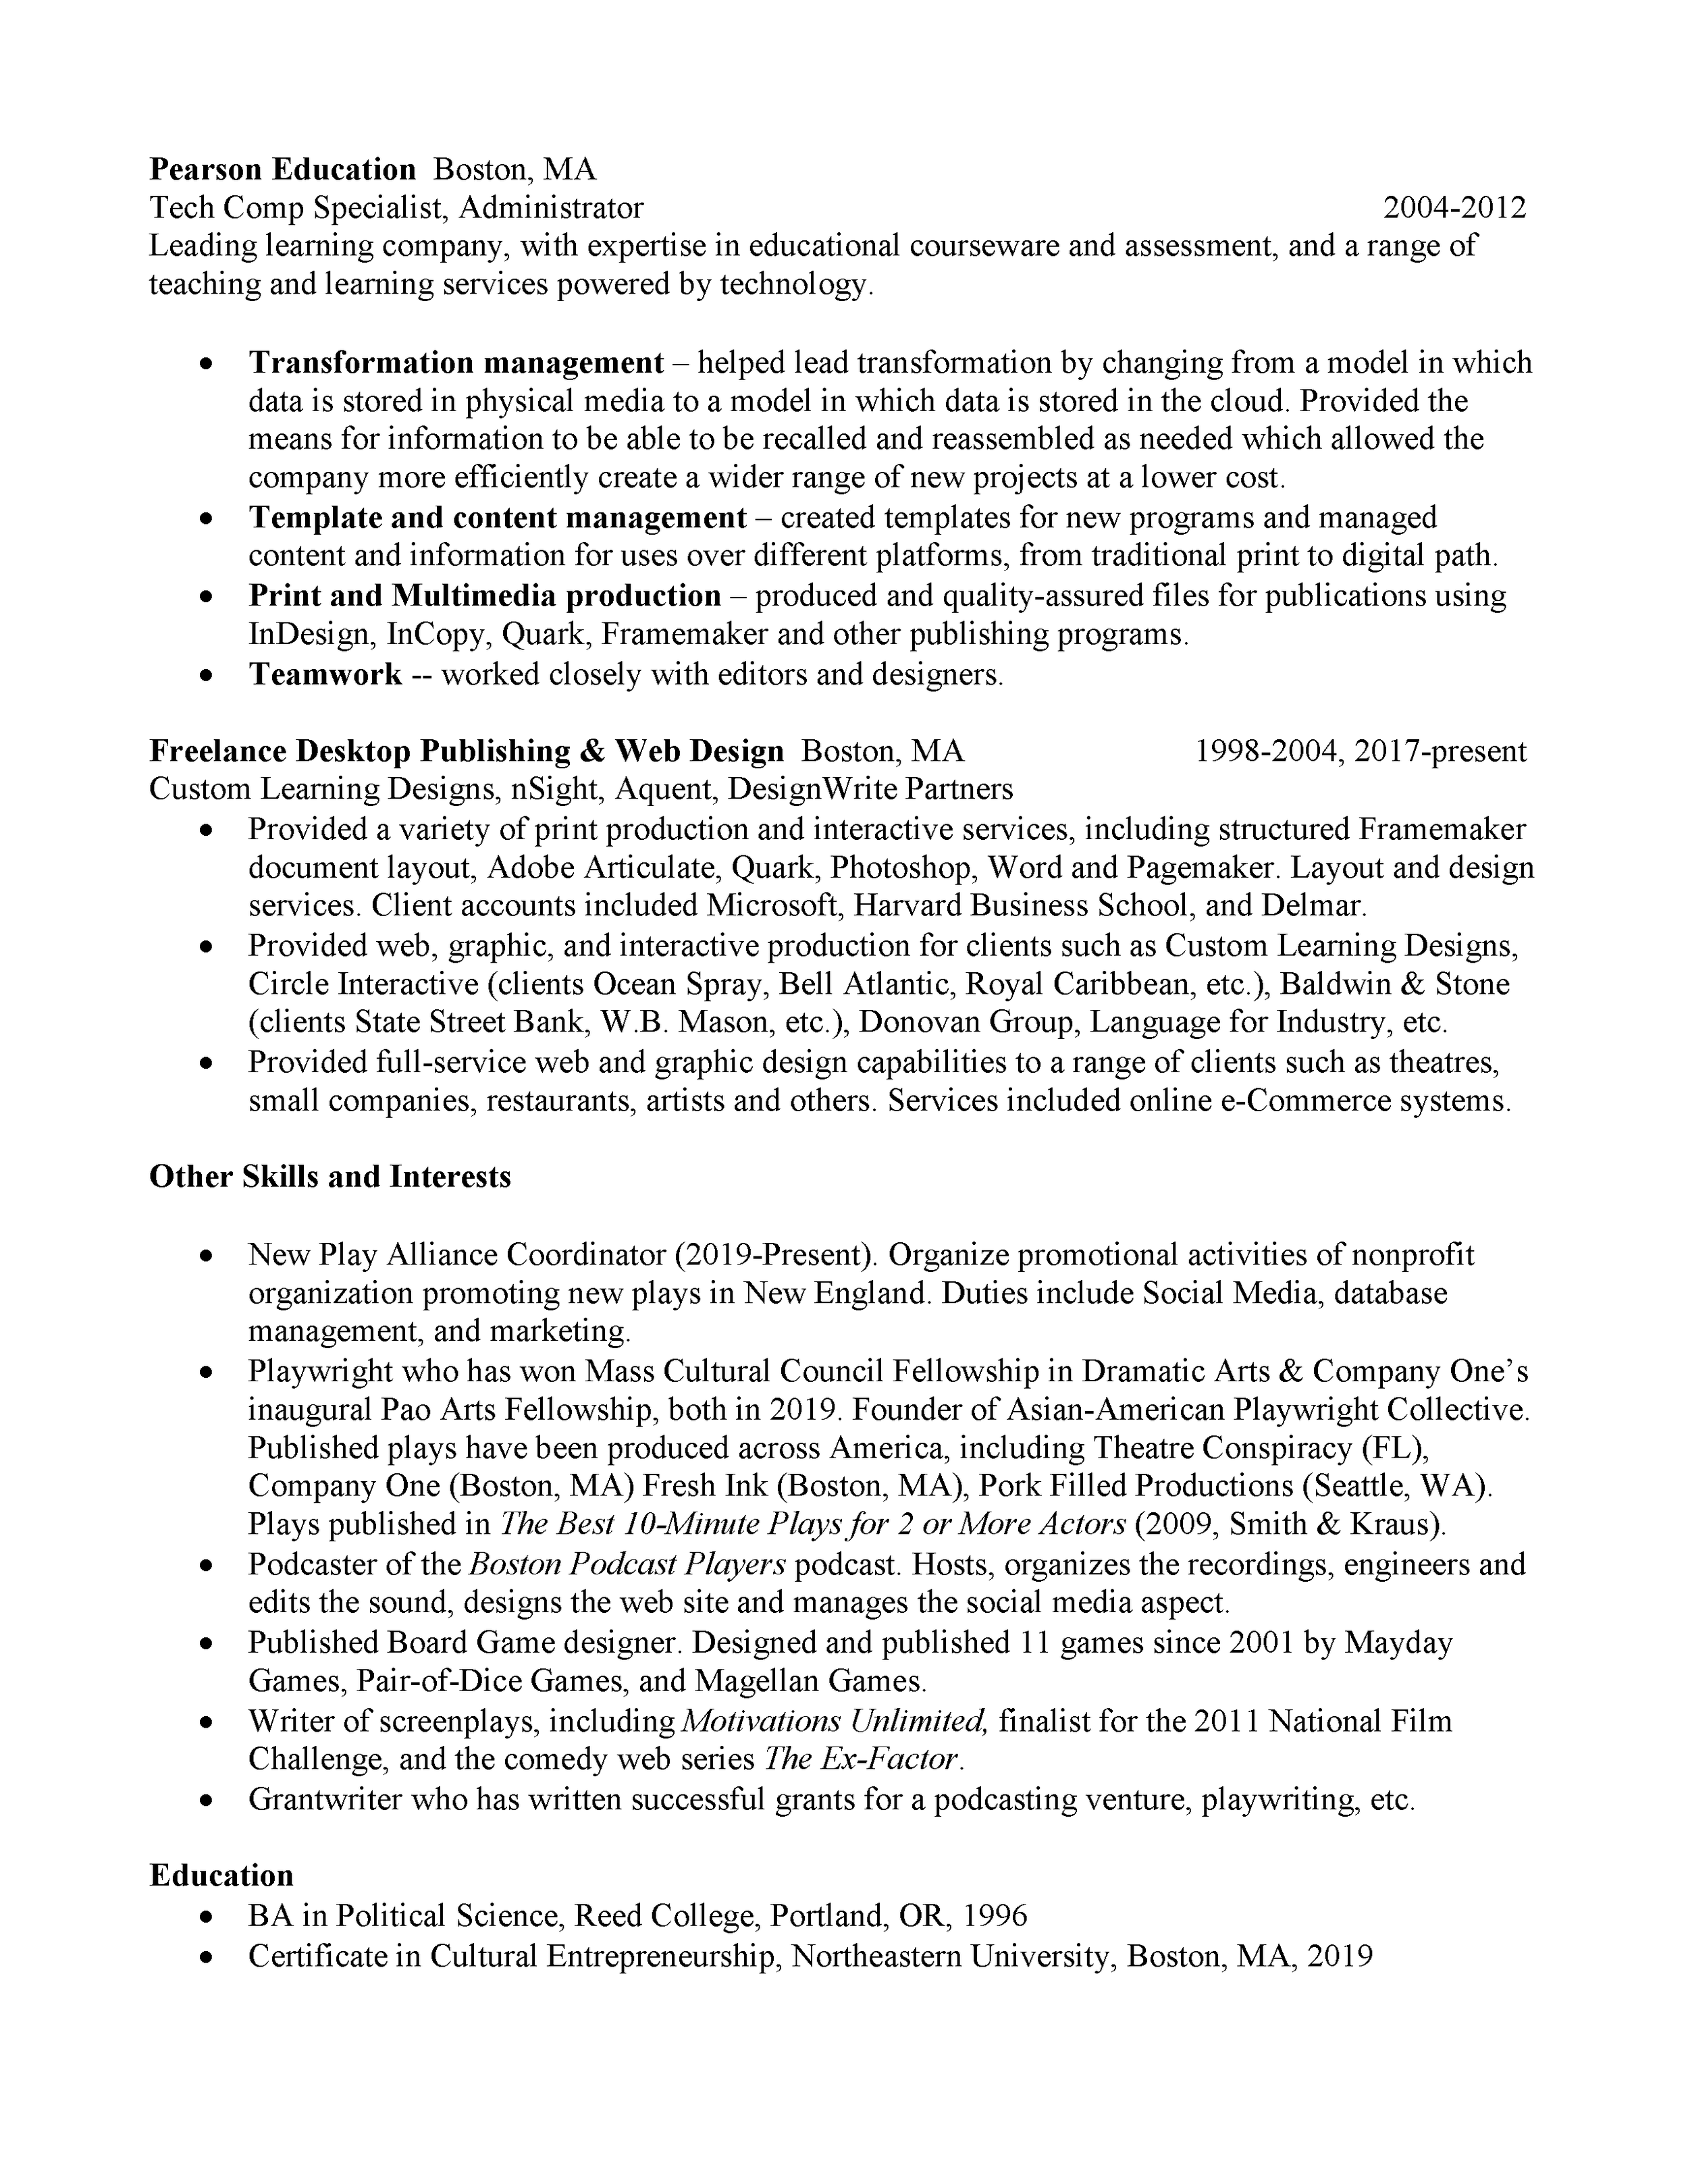 2019_Greg_Lam_Resume_Page_2.png